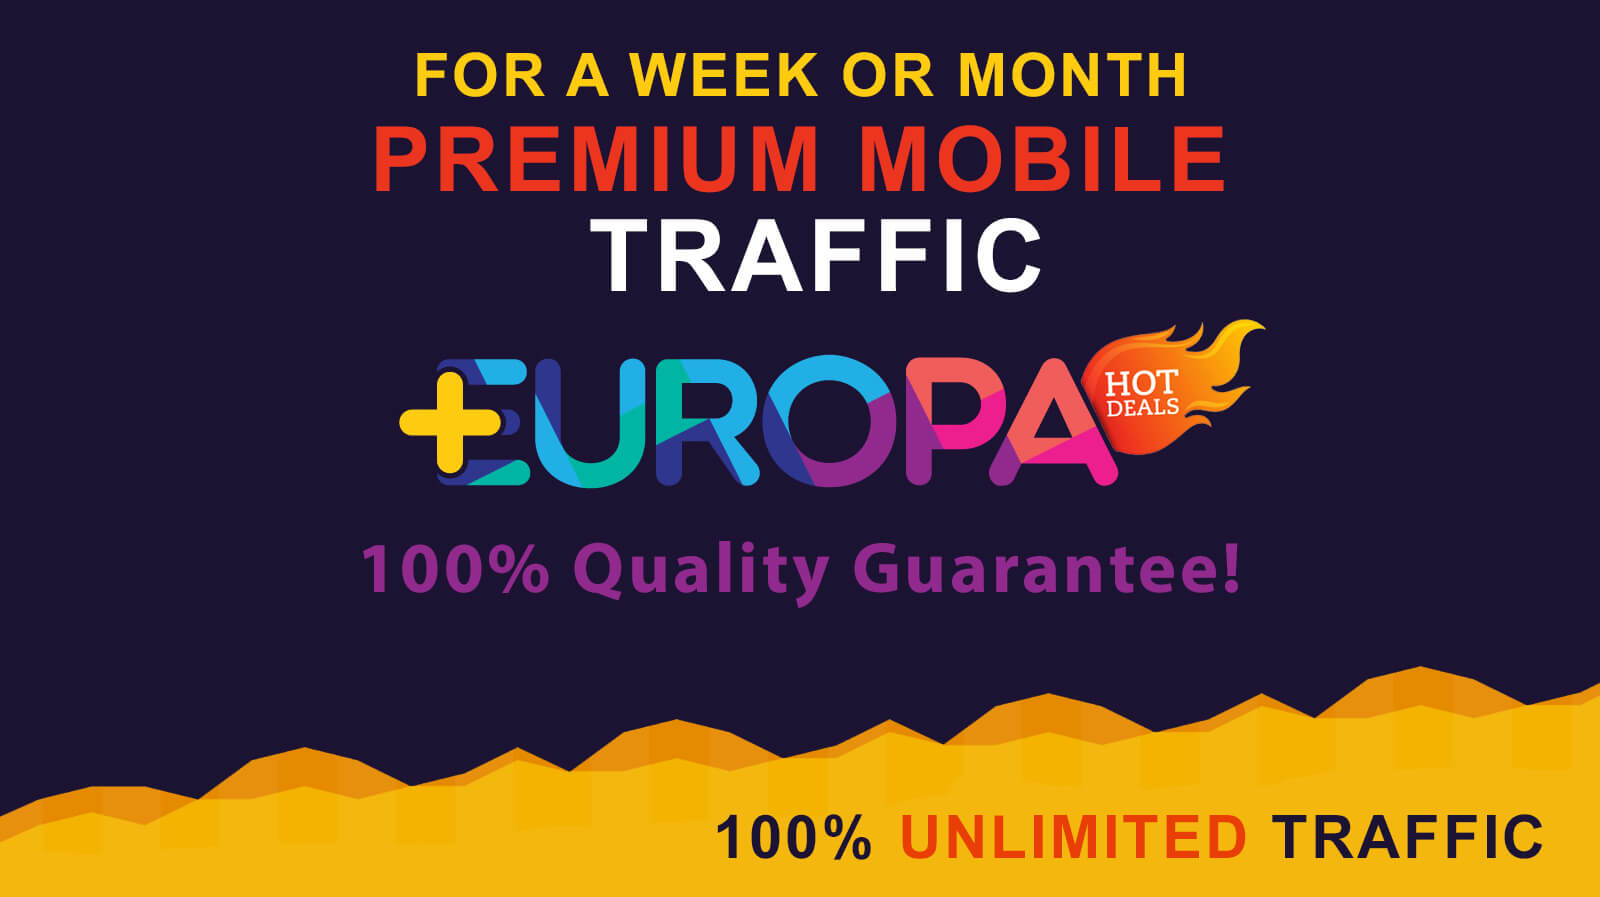 UNLIMITED MOBILE TRAFFIC FOR A WEEK OR MONTH PLUS BONUS